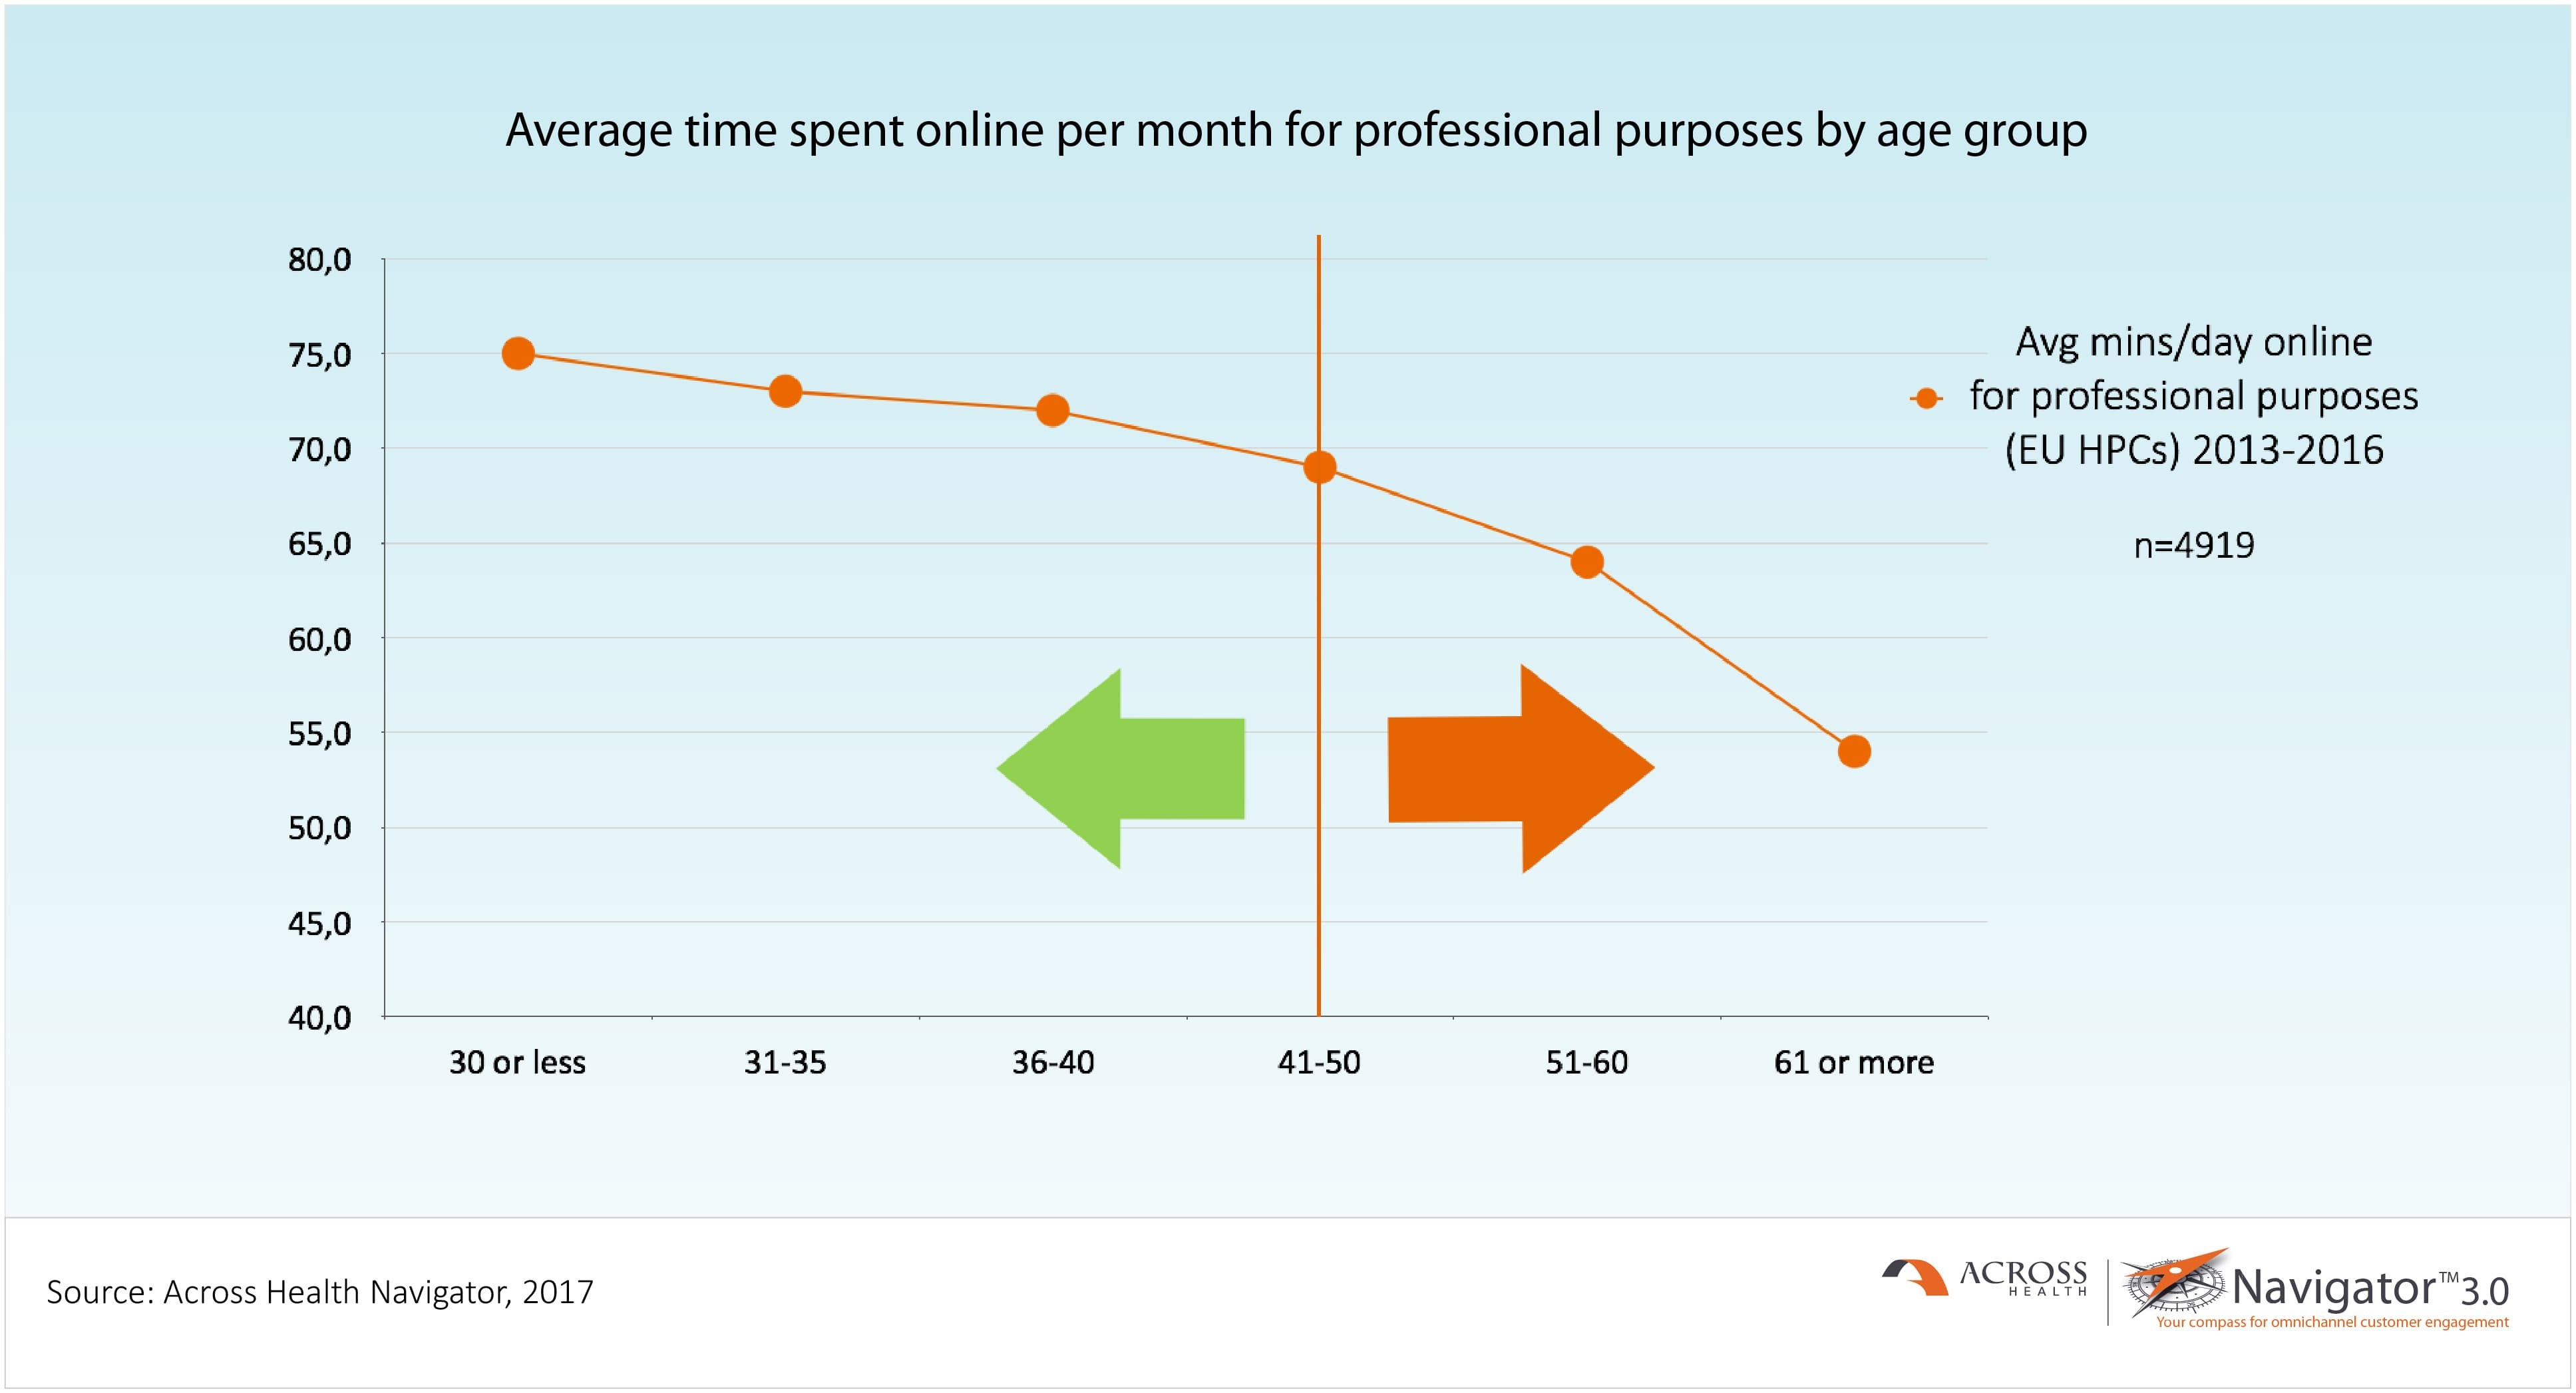 Average time spent online per month for professional purposes by age group